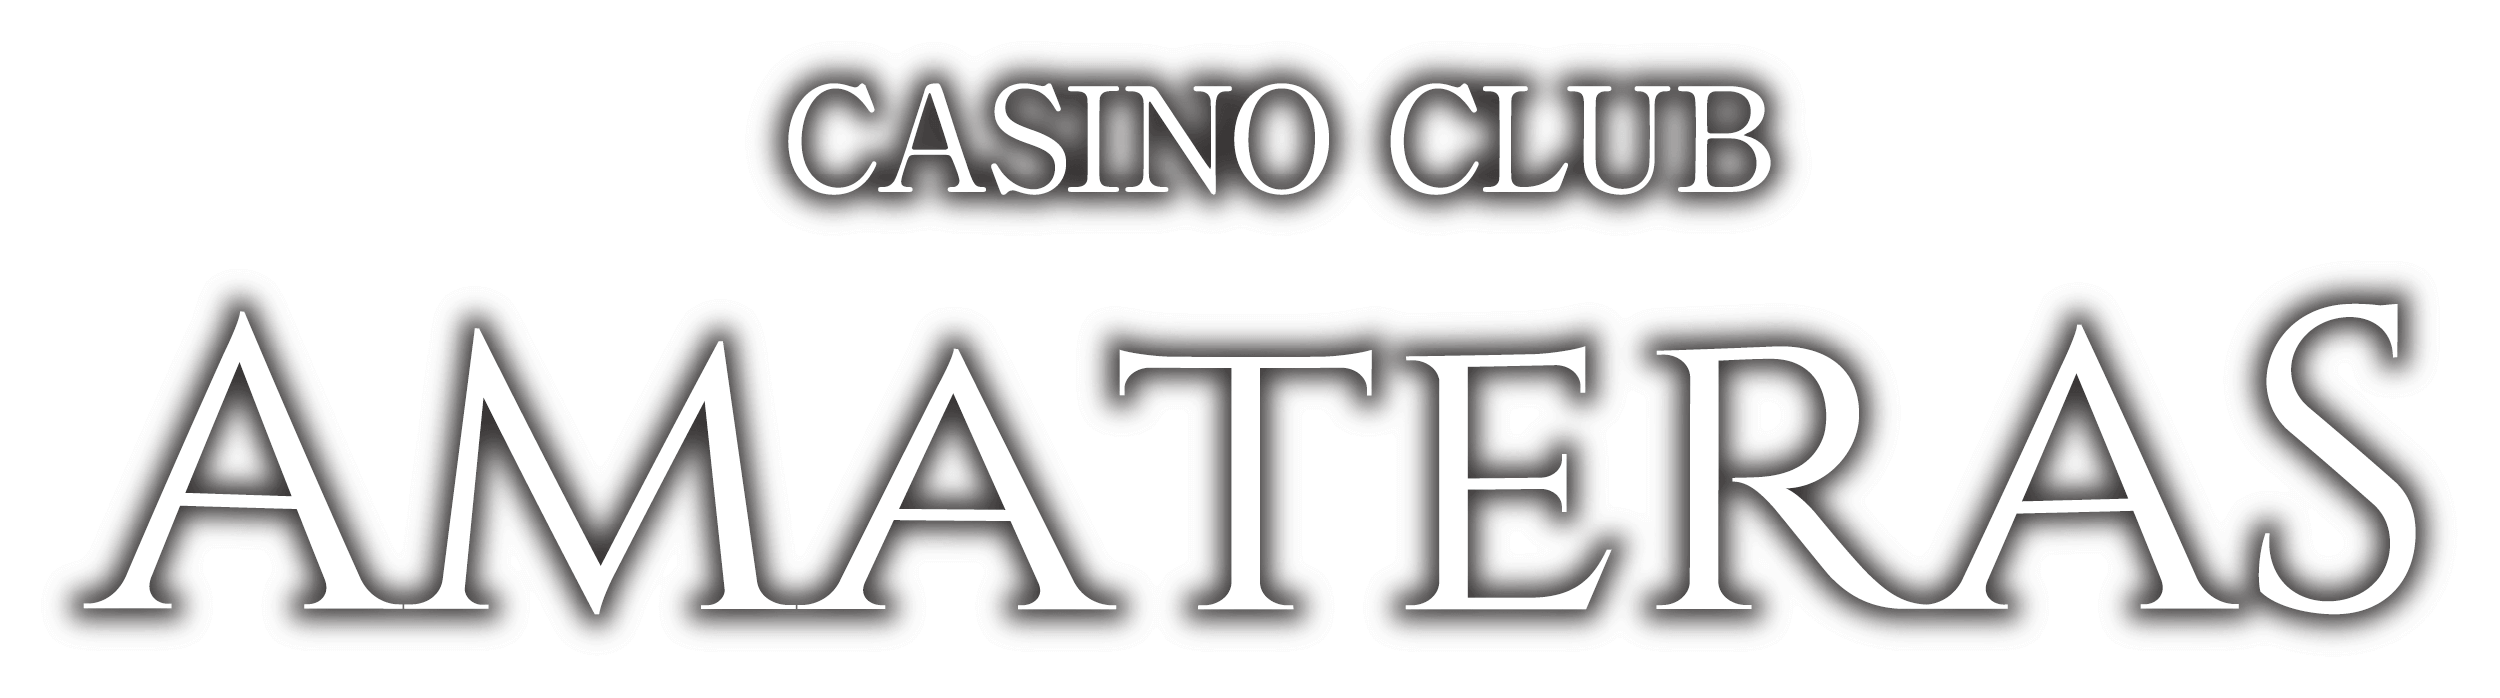 CASINO CLUB AMATERAS